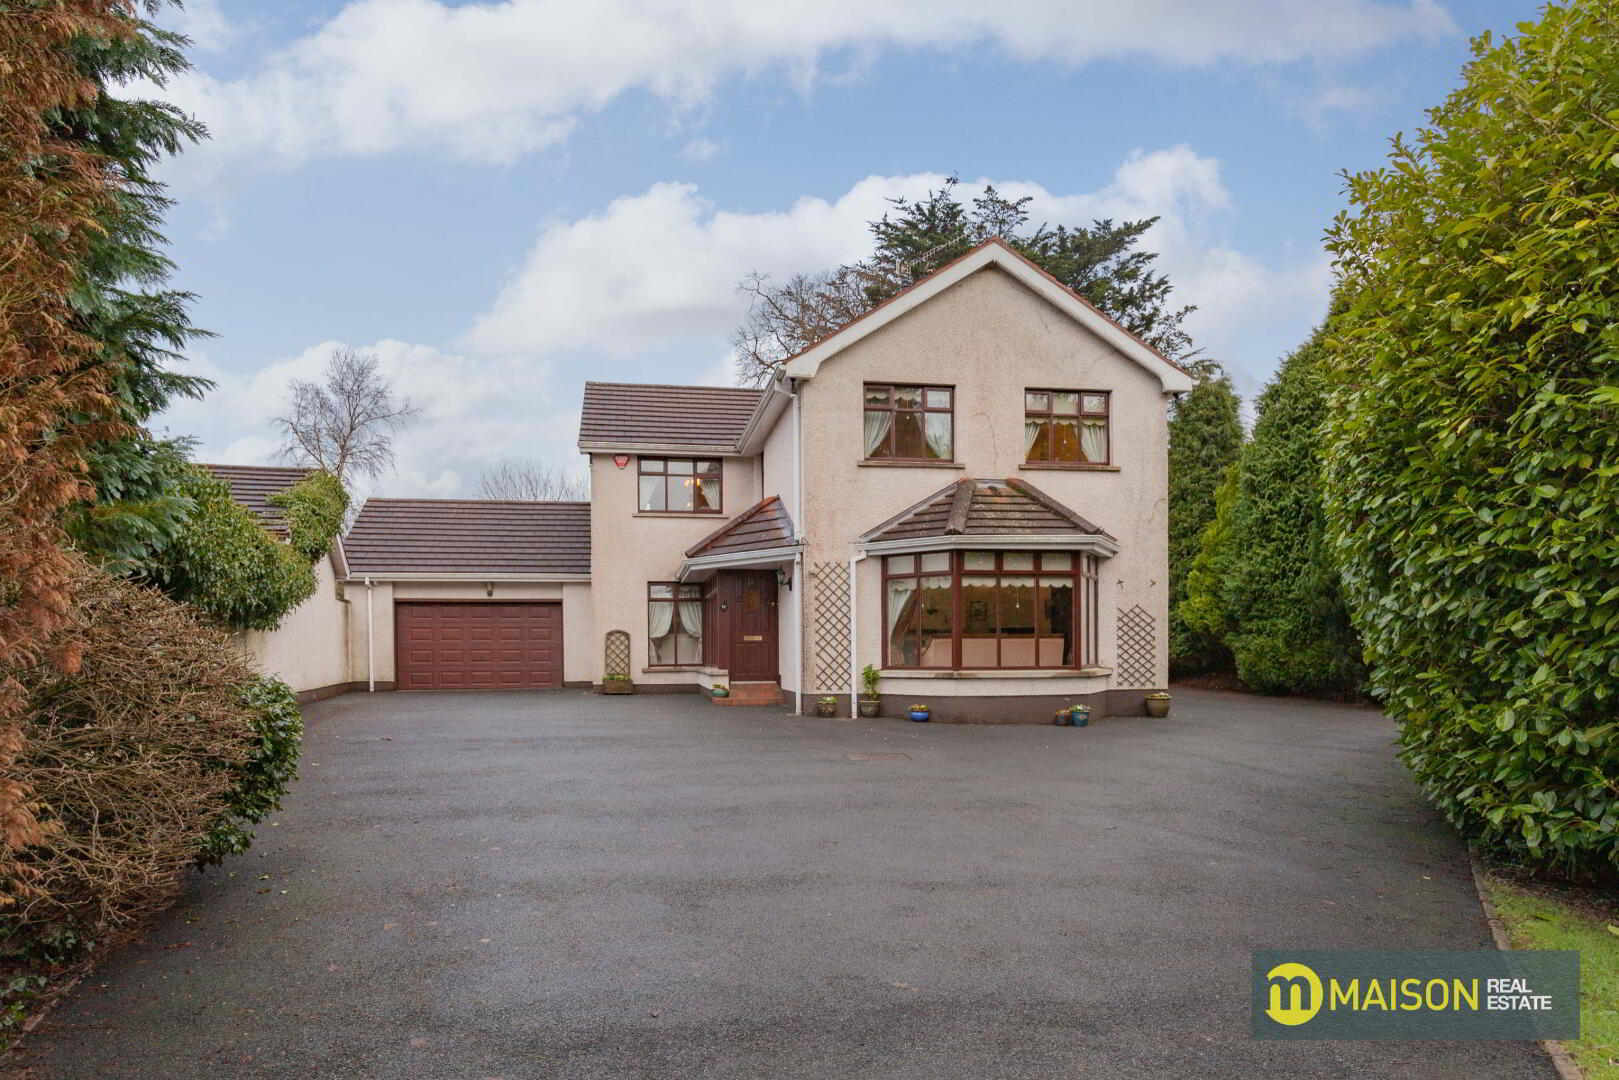 Photo 1 of 14A Portadown Road, Armagh